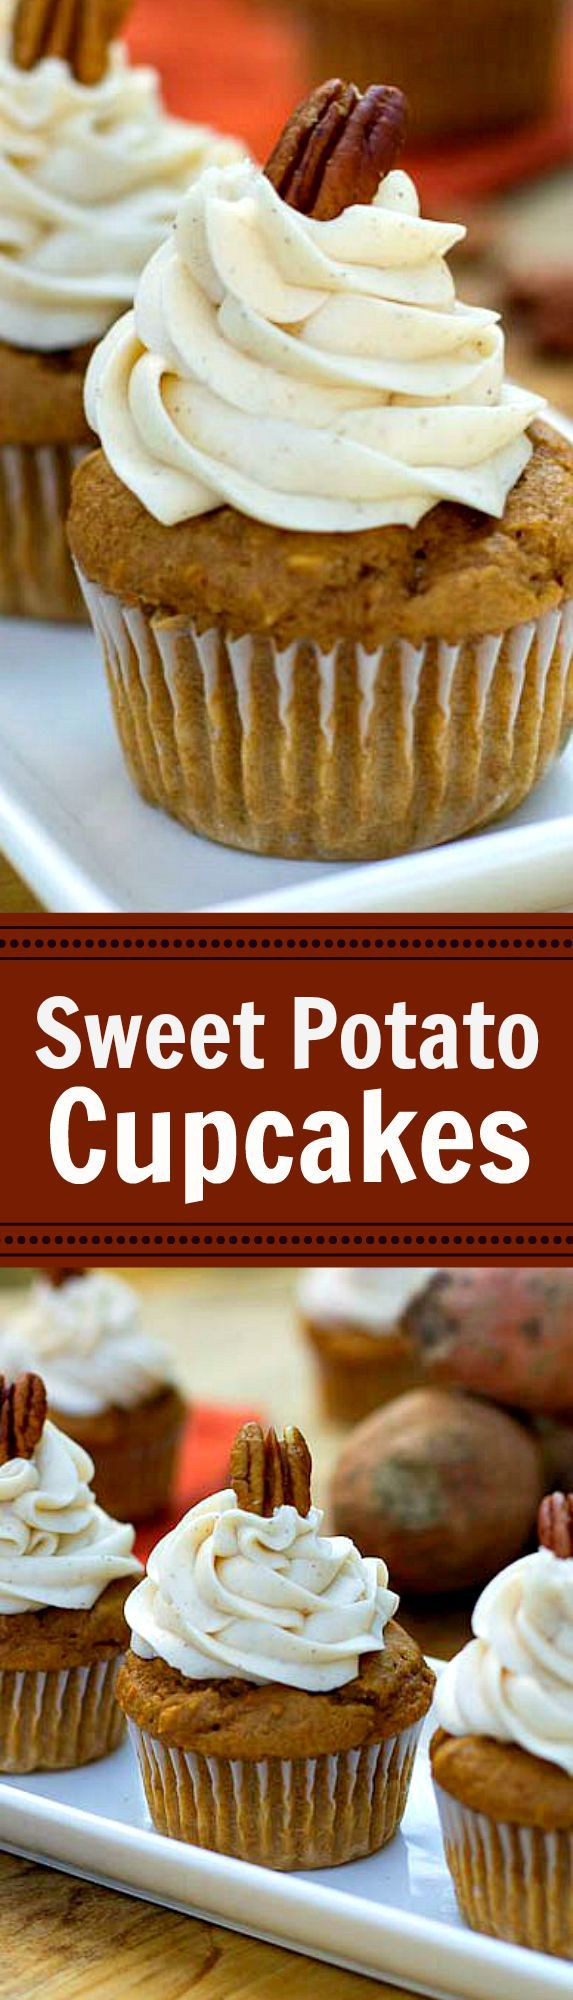 Sweet Potato Cupcakes with Spiced Buttercream.                                                                                                                                                                                 More